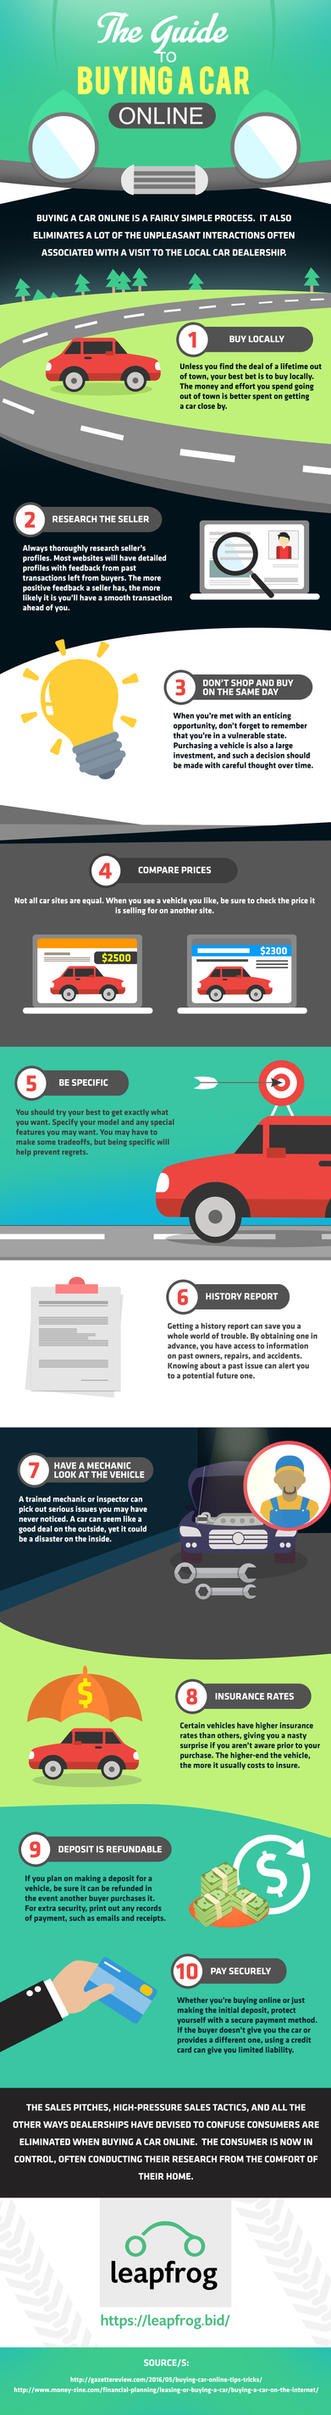 Infograhics: Guide For Buying Cars Online by Leapfrogcar